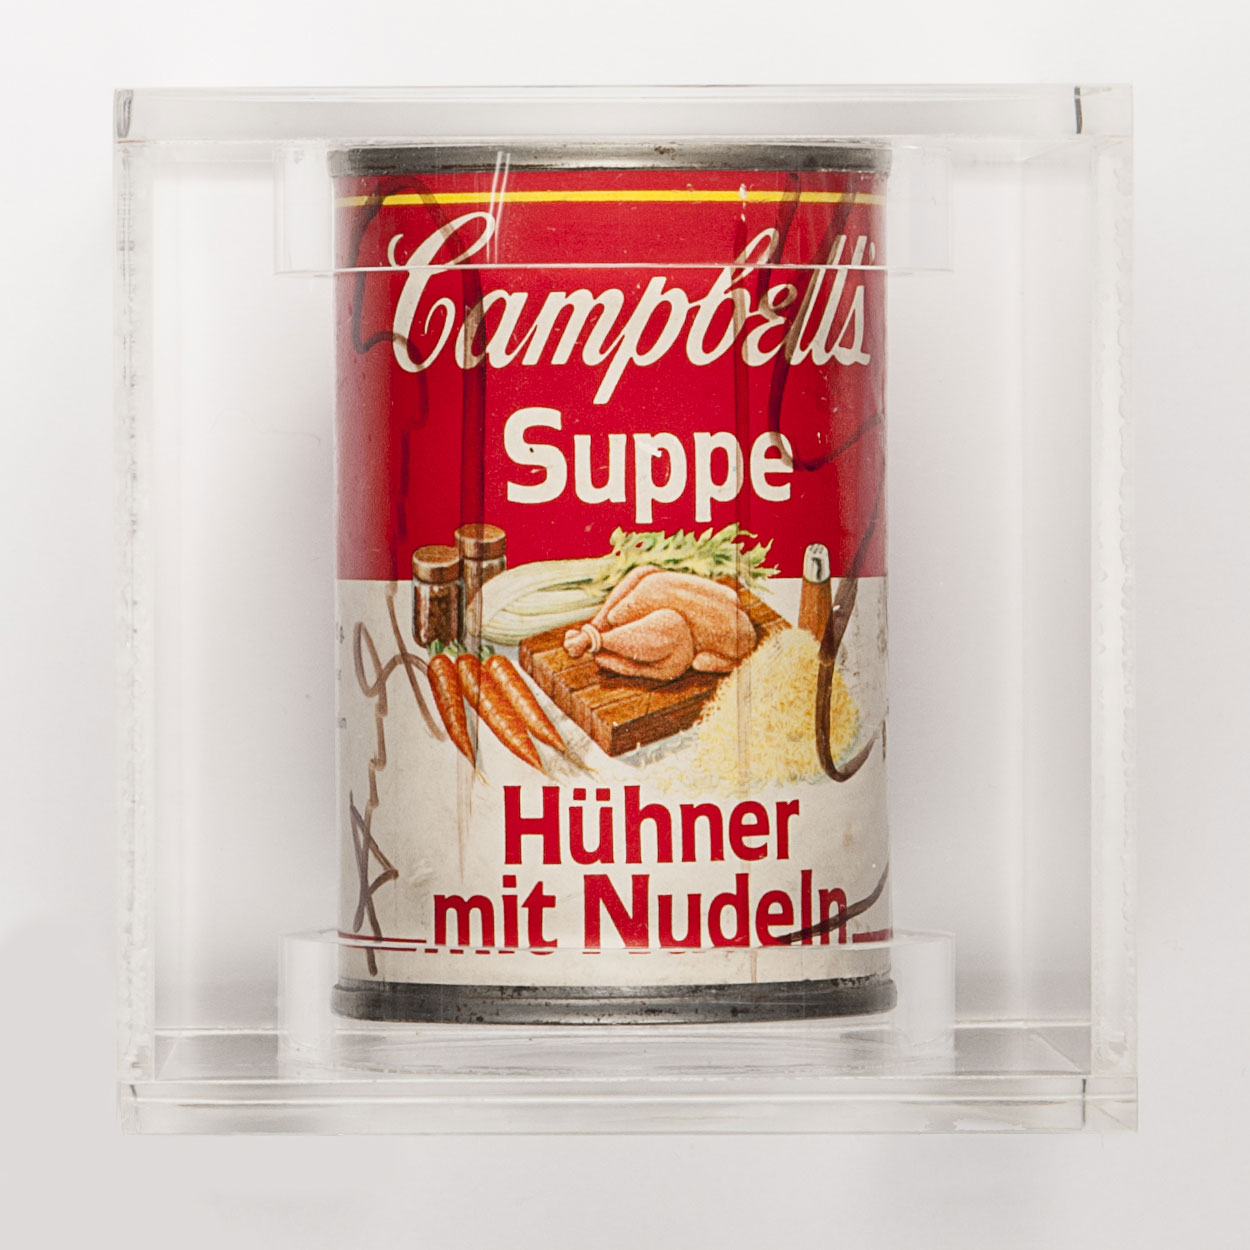 Andy Warhol, Campbell's Soup, 1970, cm 10 x 6,5 x 6,5